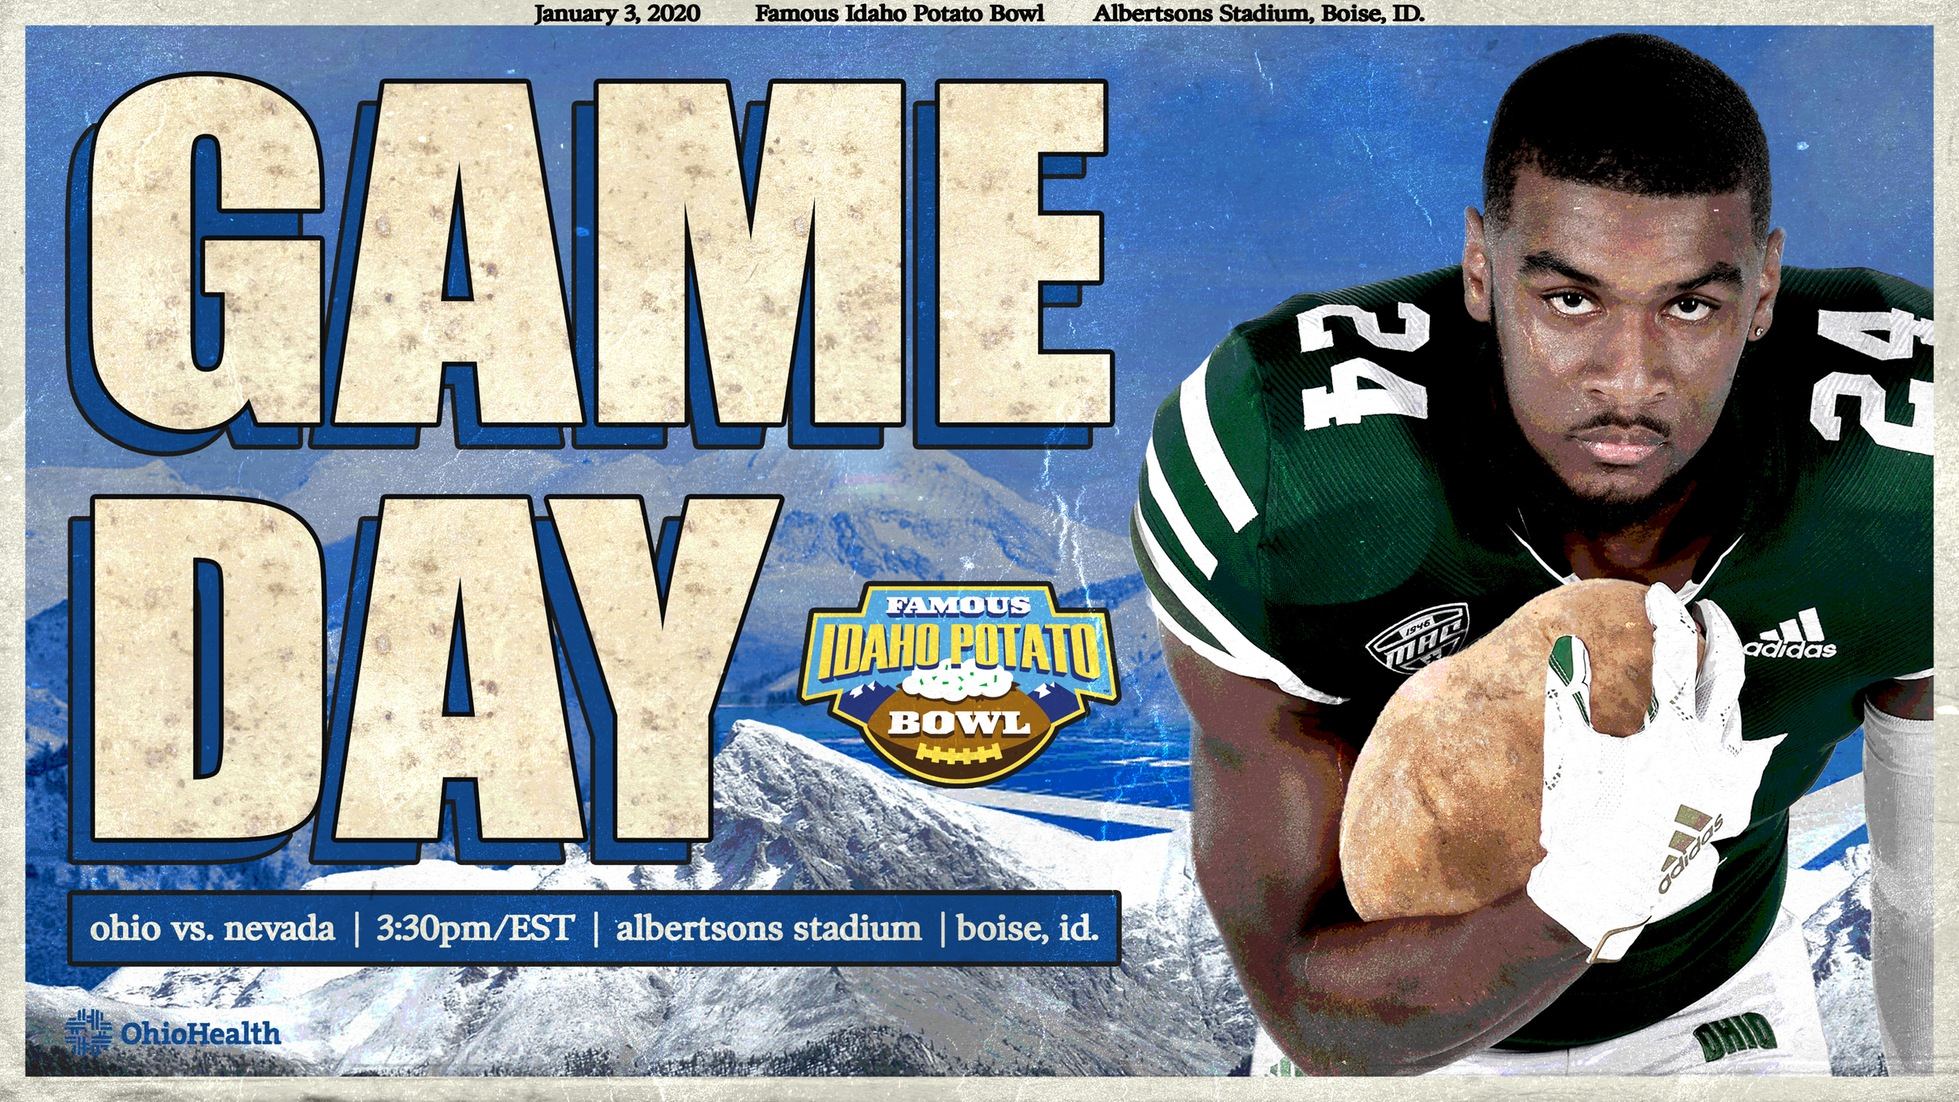 Game Day in Boise: Ohio Football Battles Nevada This Afternoon in 23rd Famous Idaho Potato Bowl